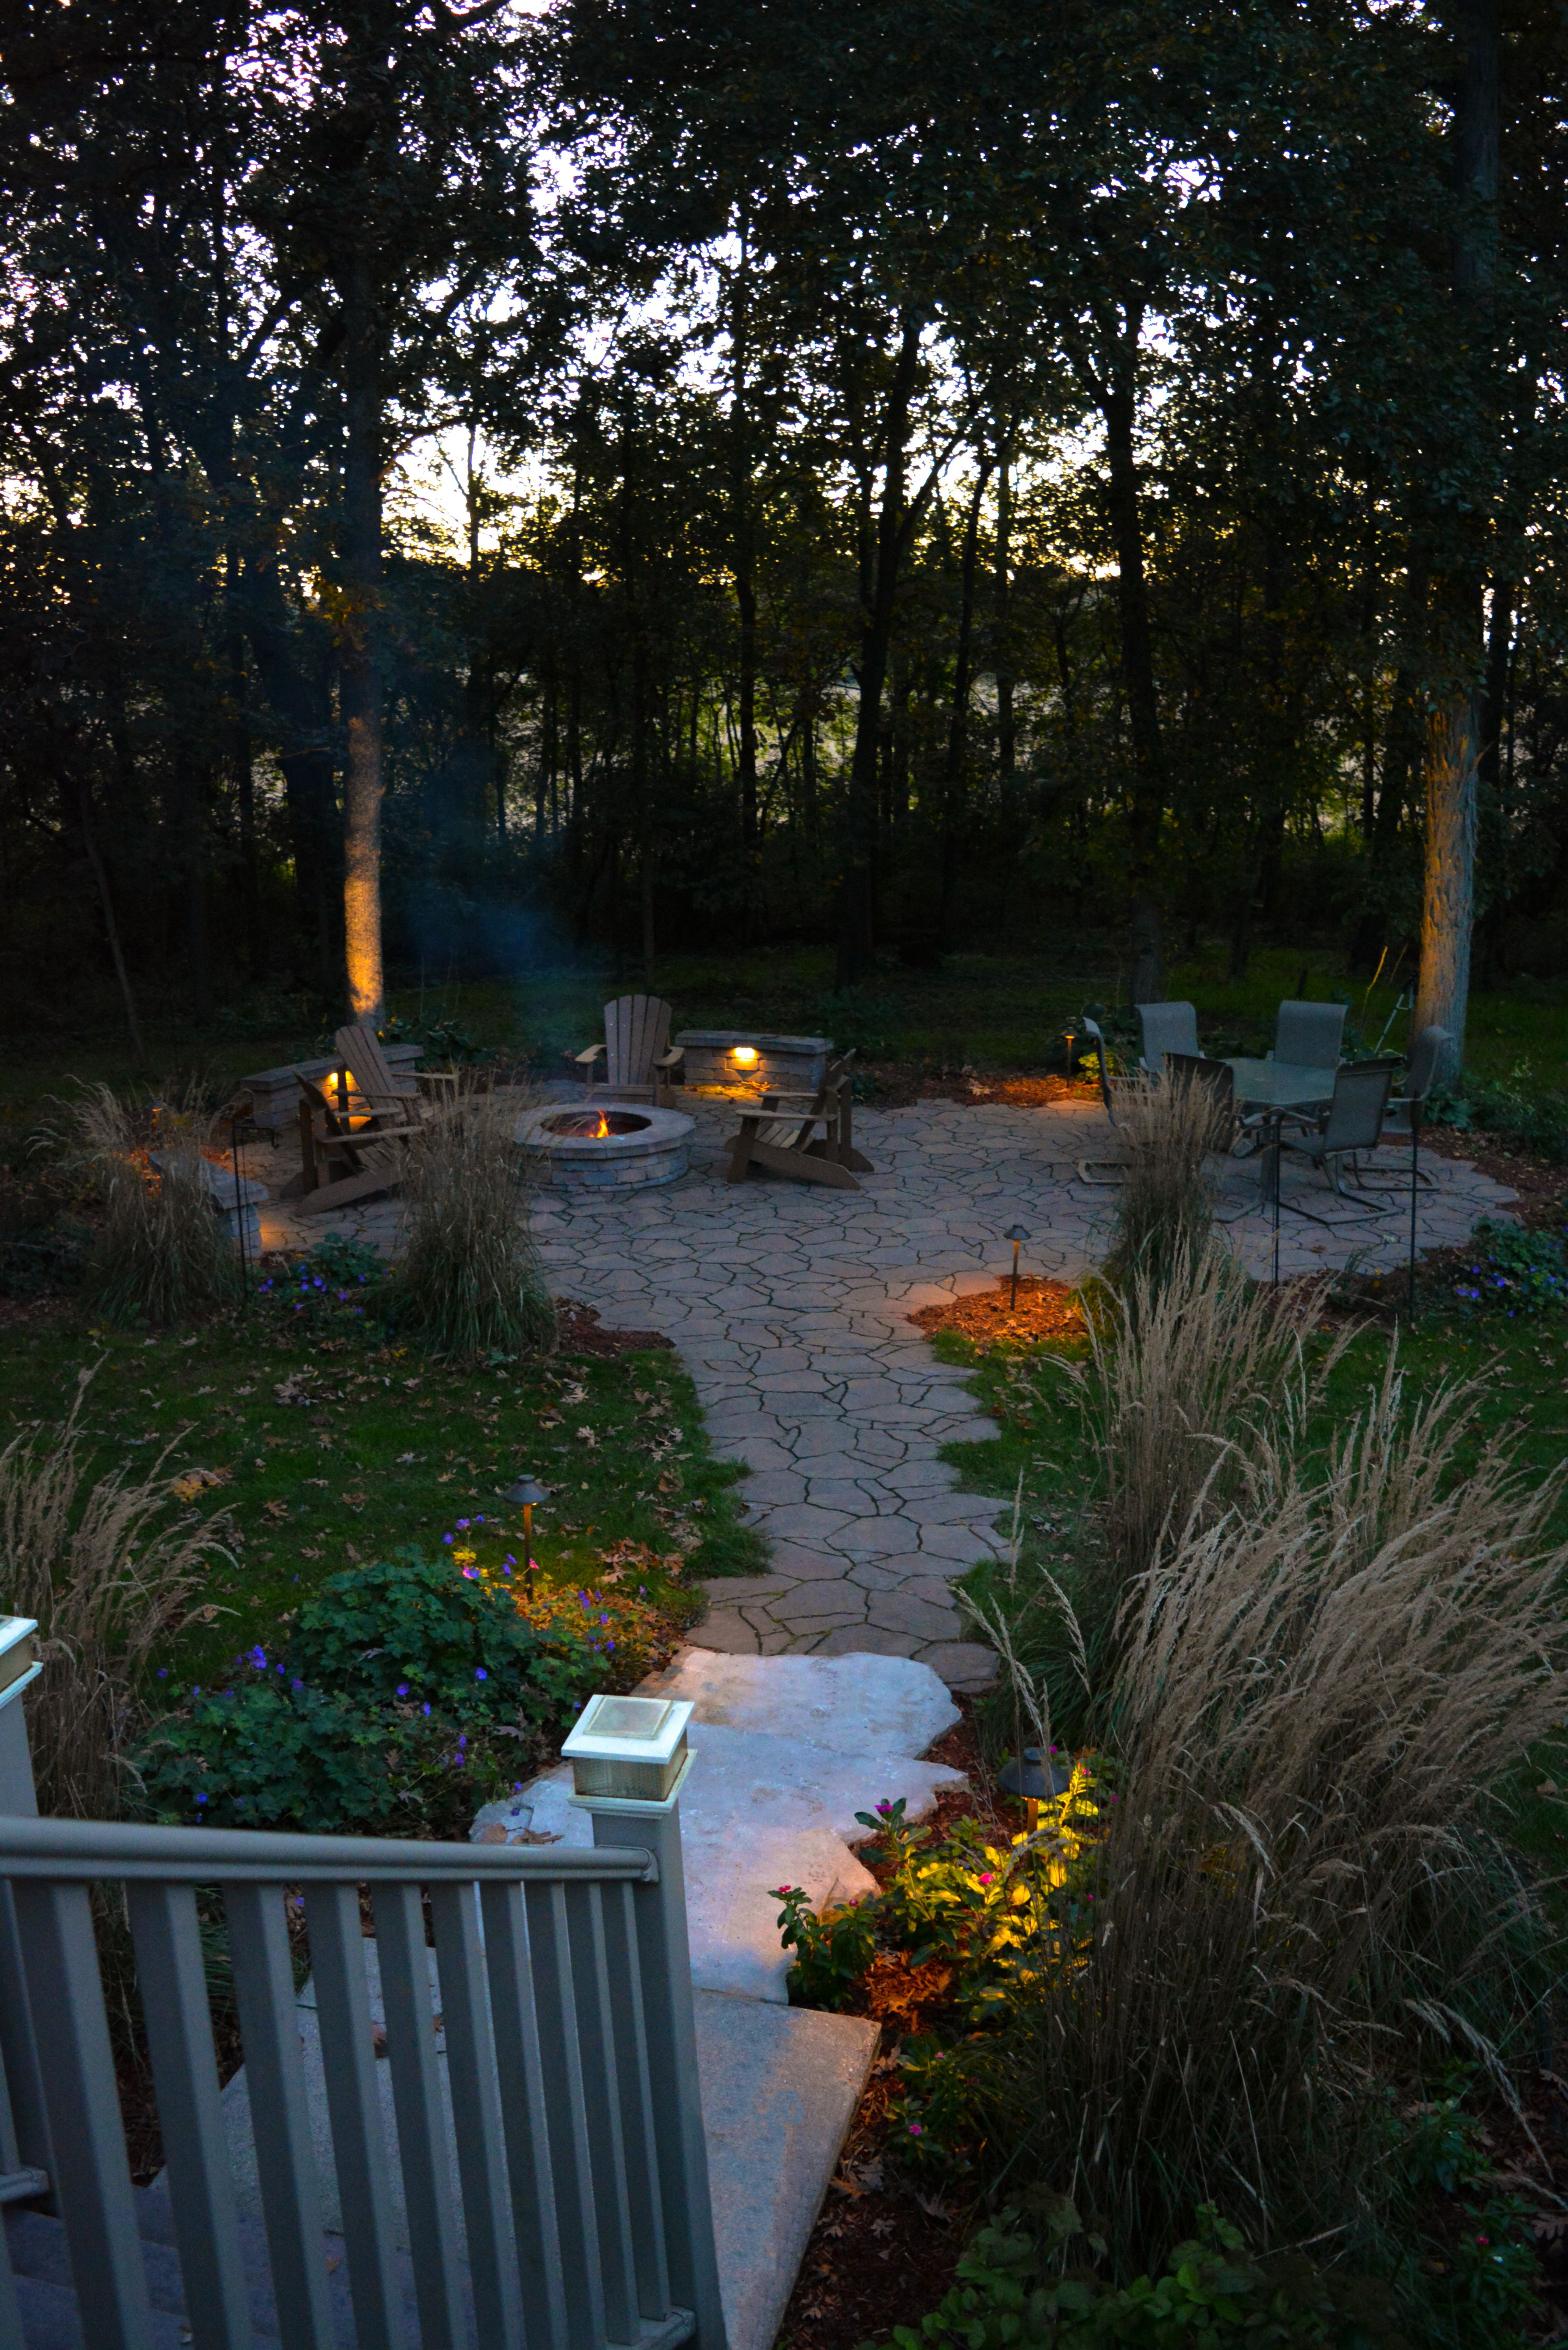 Beautiful Wisconsin Fall Evening All Landscaping And Hardscape Design Done By M Backyard Landscaping Designs Online Landscape Design Landscape Design Software